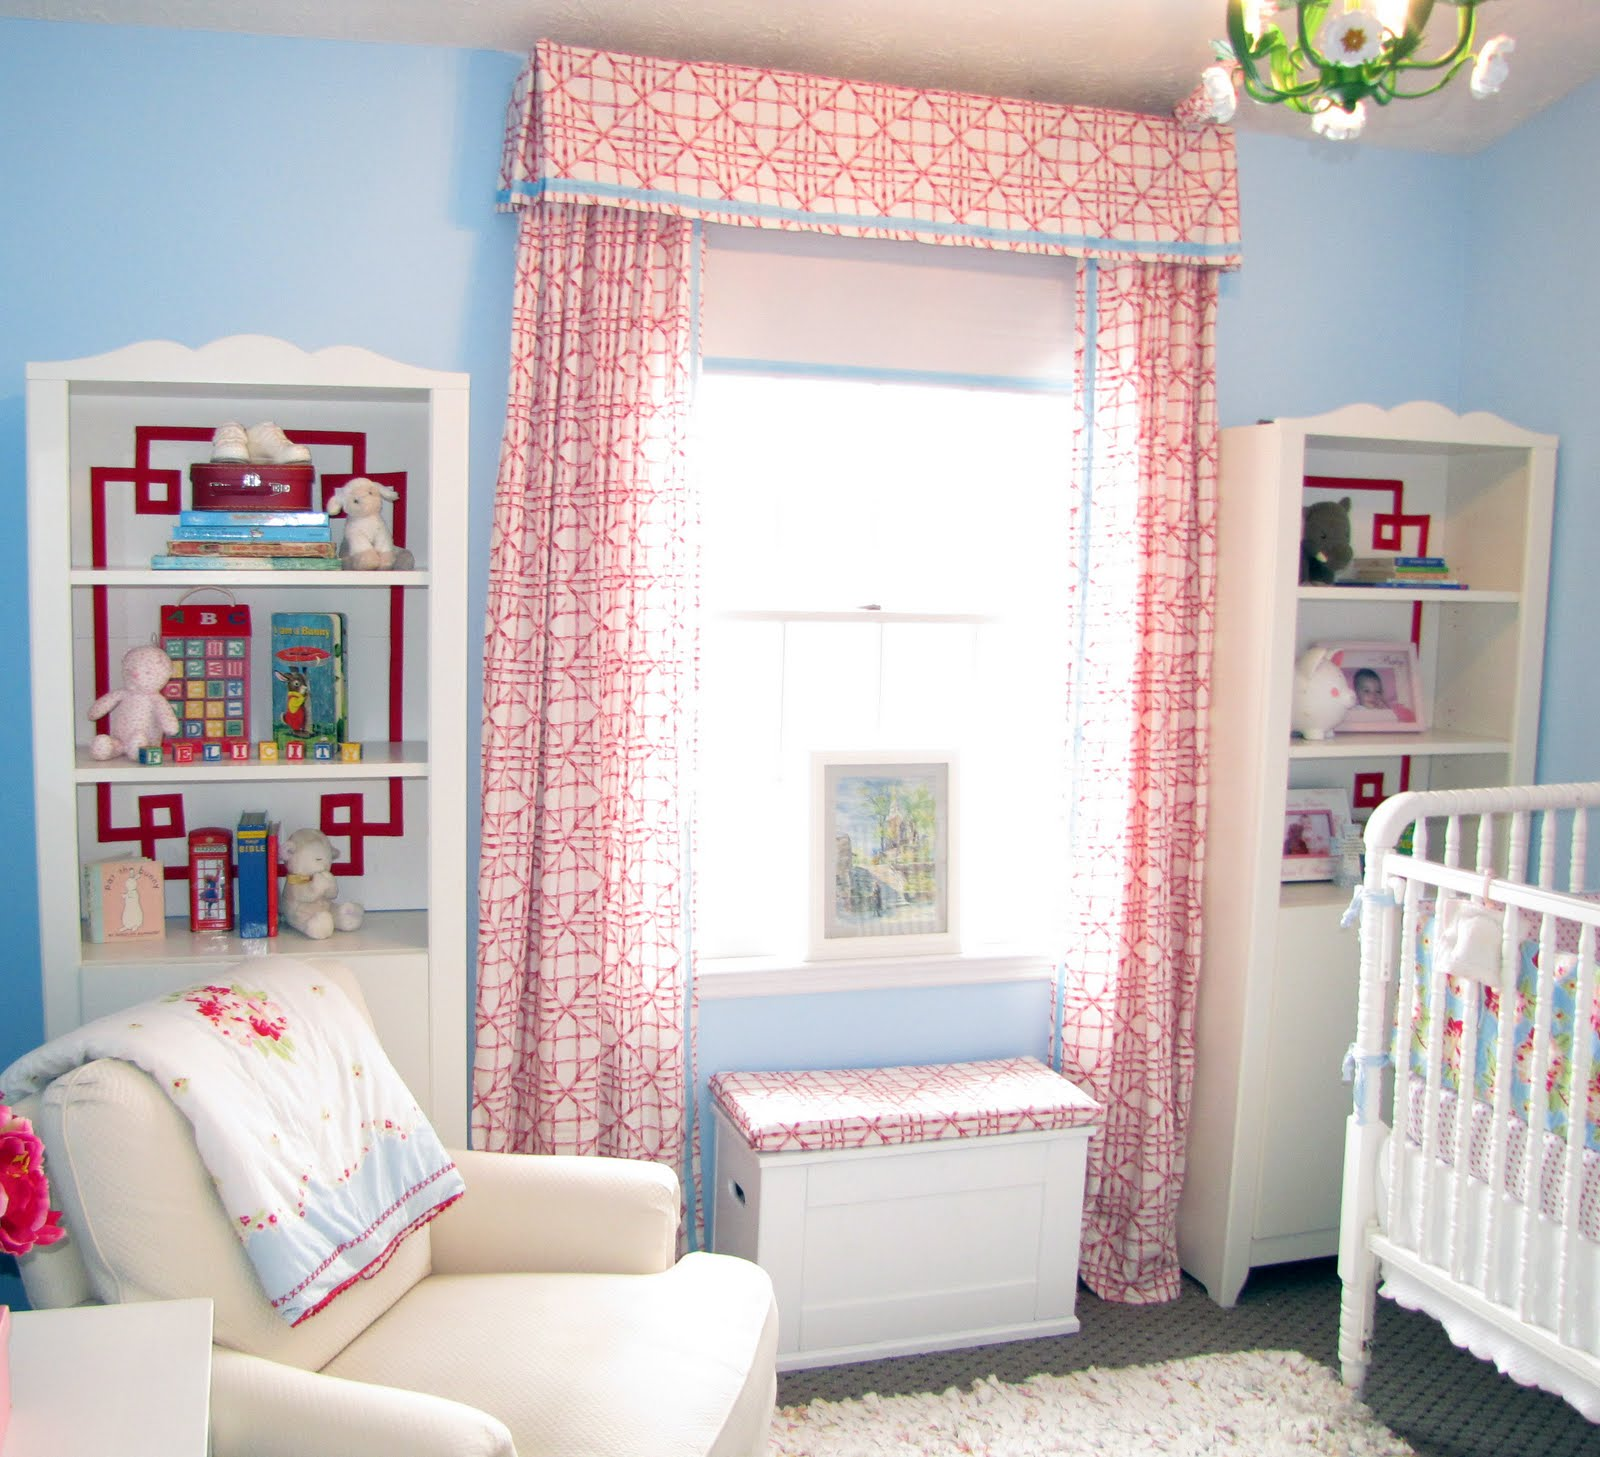 20 Beautiful Baby Boy Nursery Room Design Ideas Full Of: Bibbidi Bobbidi Beautiful: DIY Drapes And Valance From Sheets